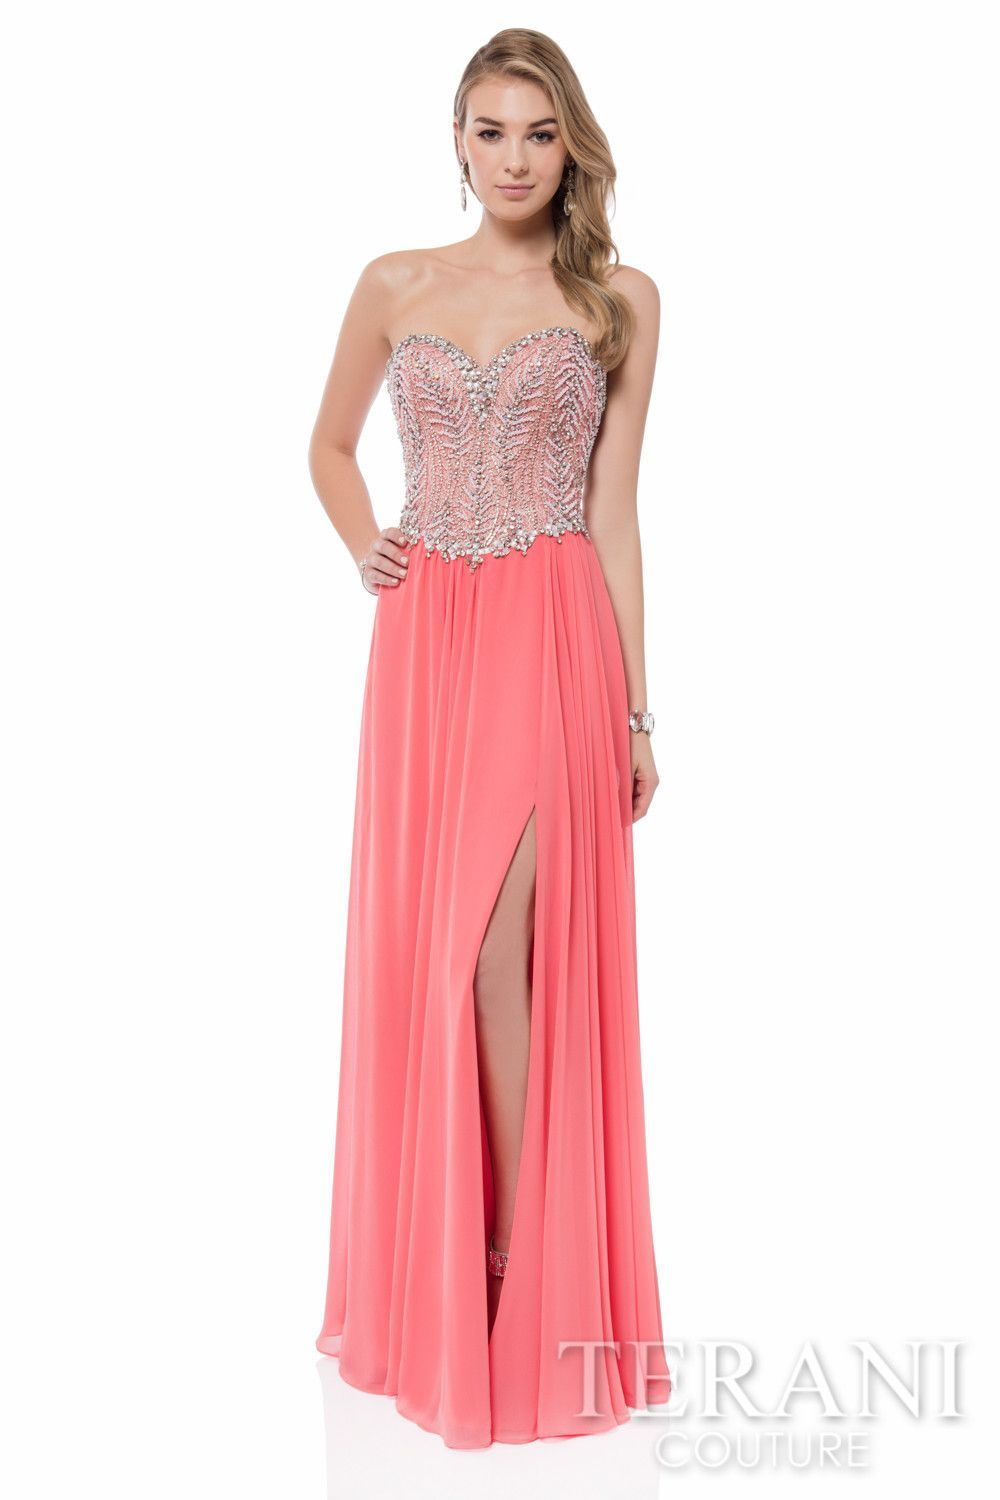 Terani Strapless Sweetheart Gown   Christmas Party Gowns   Pinterest ...